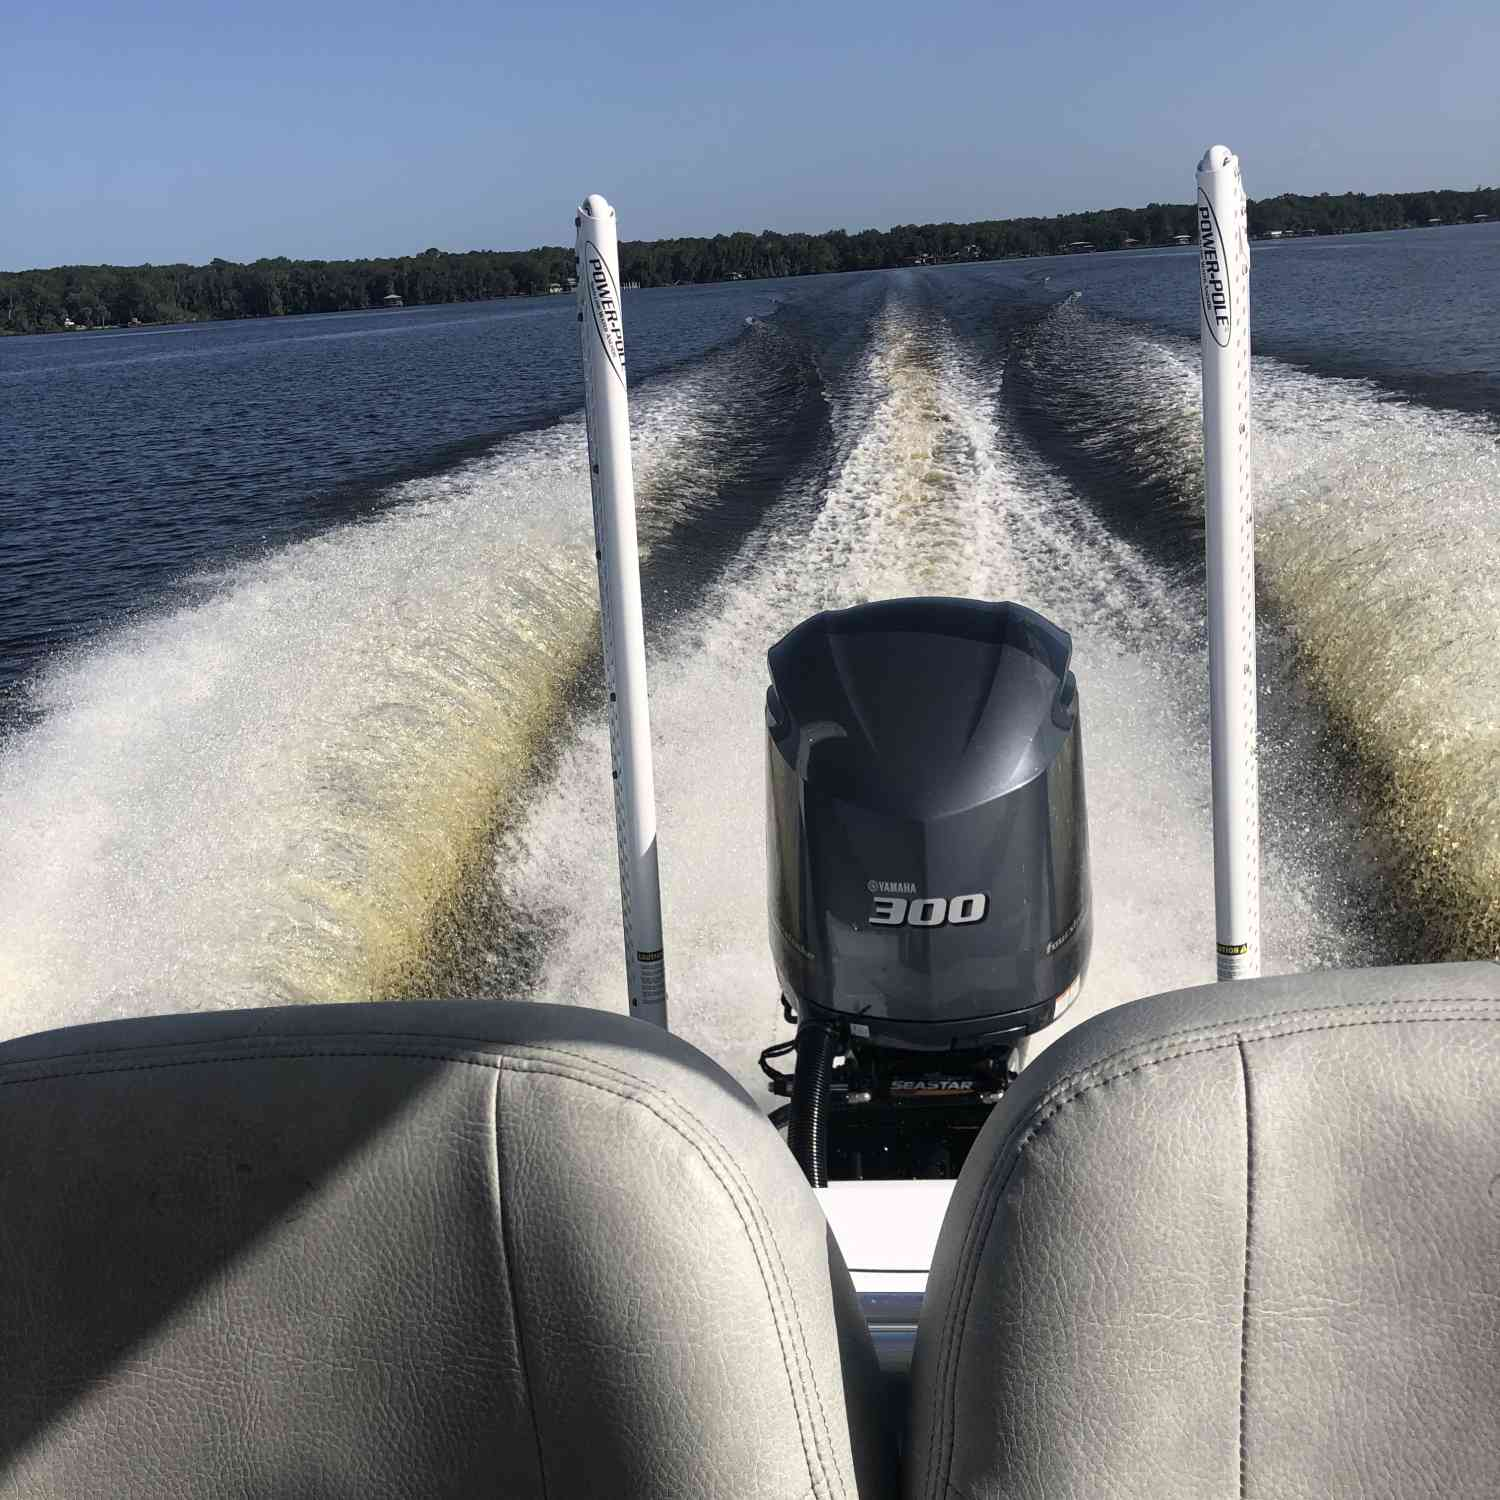 Title: River Run - On board their Sportsman Masters 247 Bay Boat - Location: St Johns River. Participating in the Photo Contest #SportsmanAugust2020